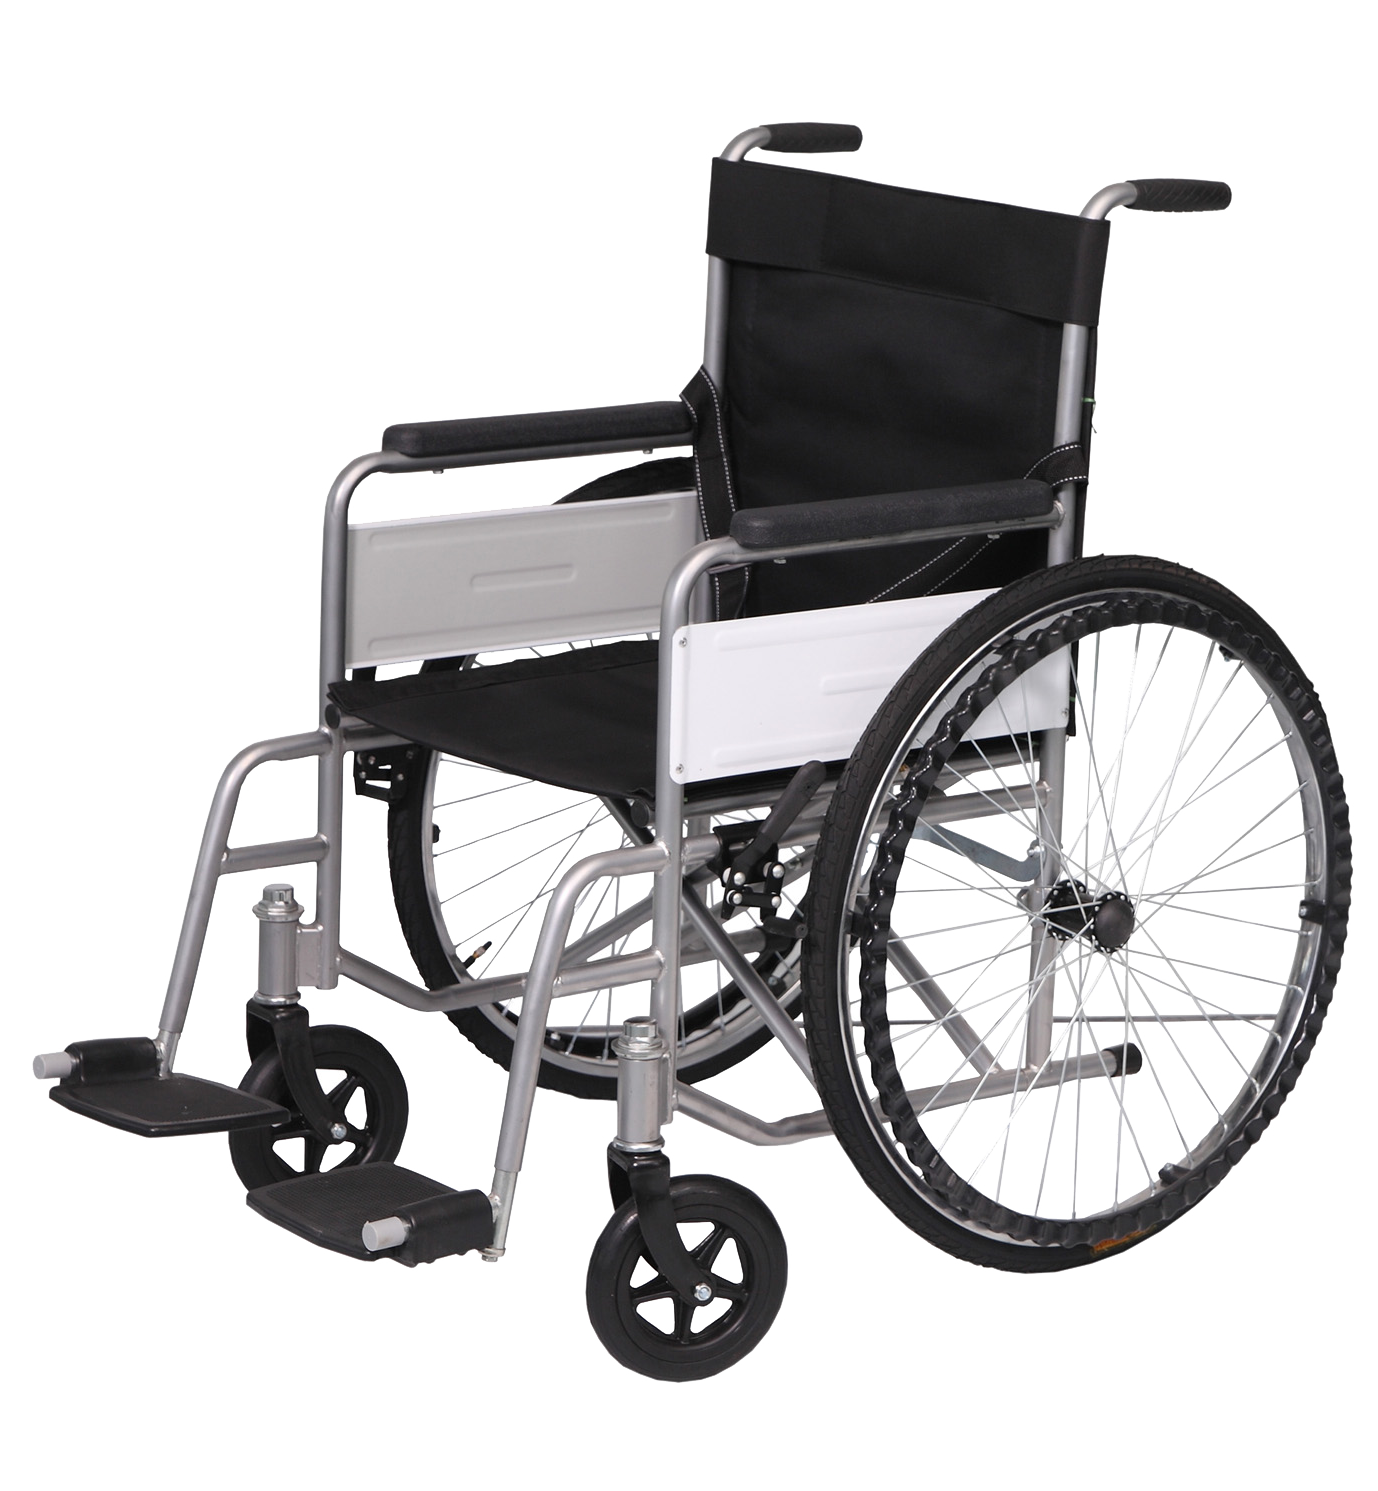 Wheelchair Png Image Wheelchair Dog Wheelchair Png